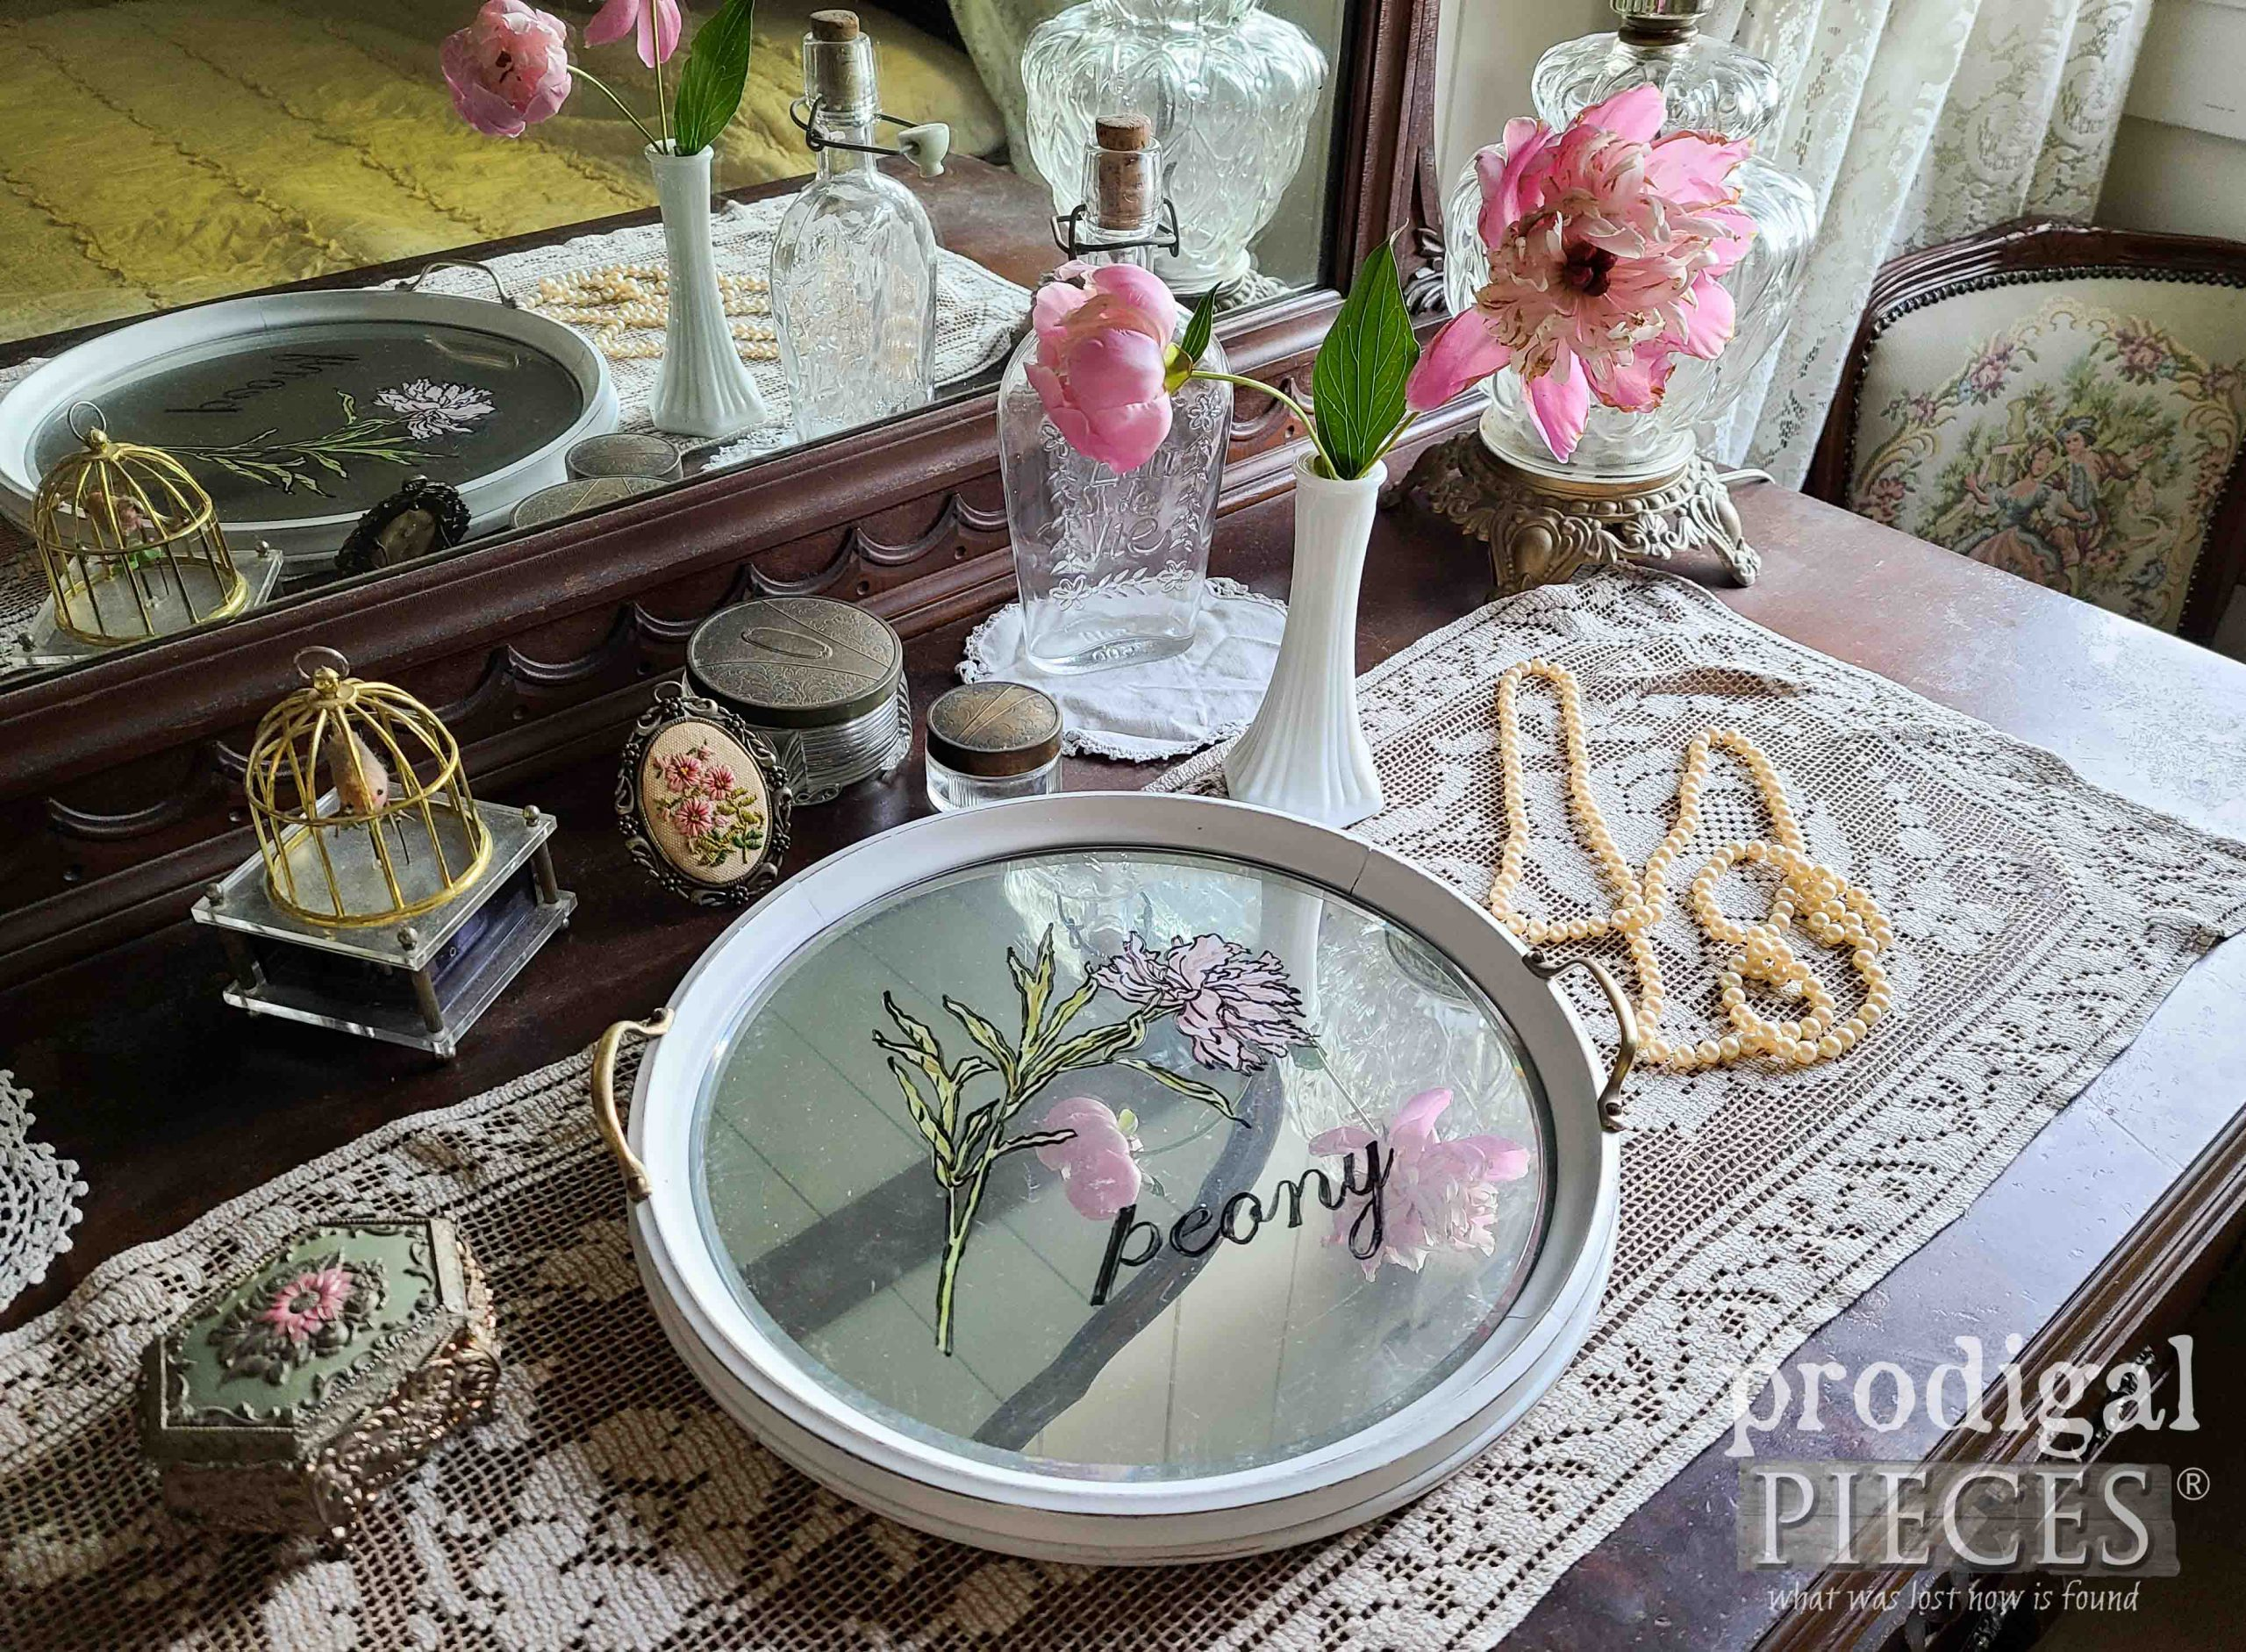 Beautiful Hand-Painted Round Glass SErving Tray with Peony by Larissa of Prodigal Pieces | prodigalpieces.com #prodigalpieces #home #diy #vintage #homedecor